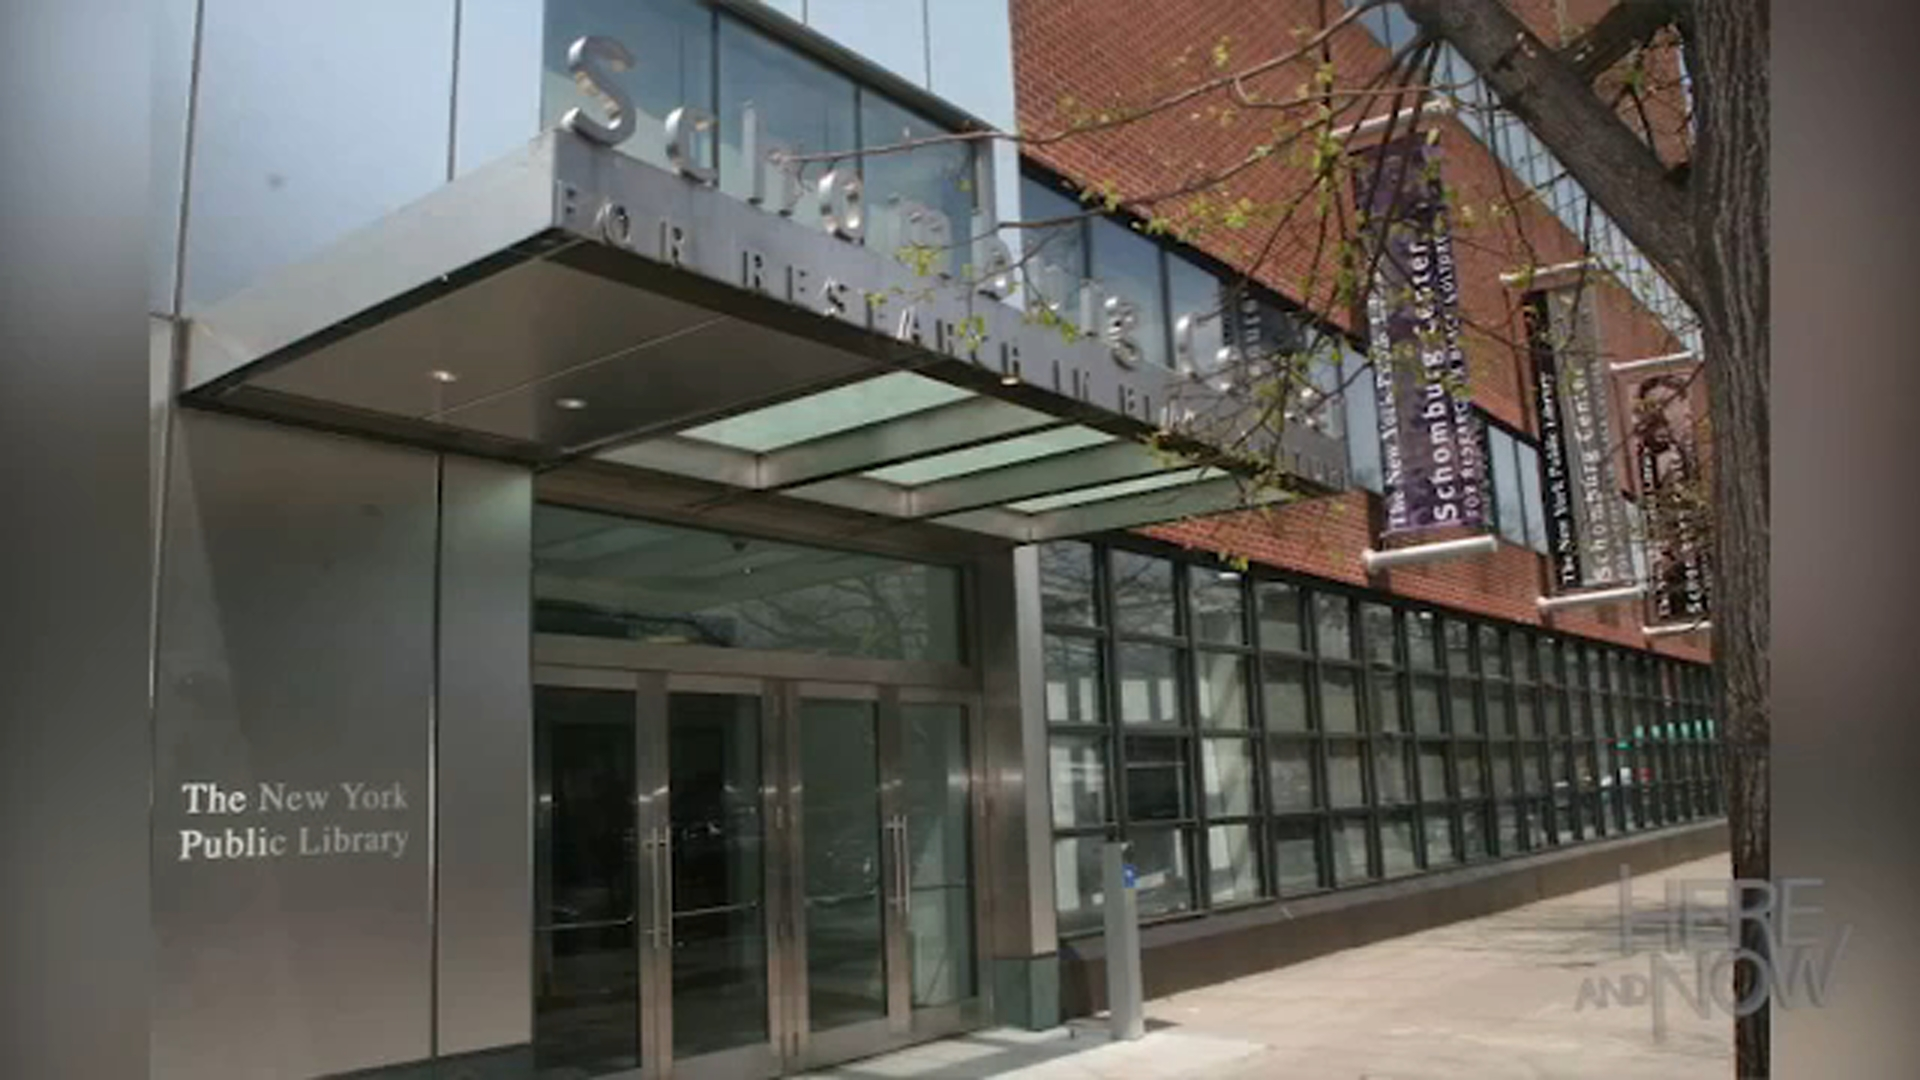 Schomburg Center has much to offer such as upcoming exhibitions